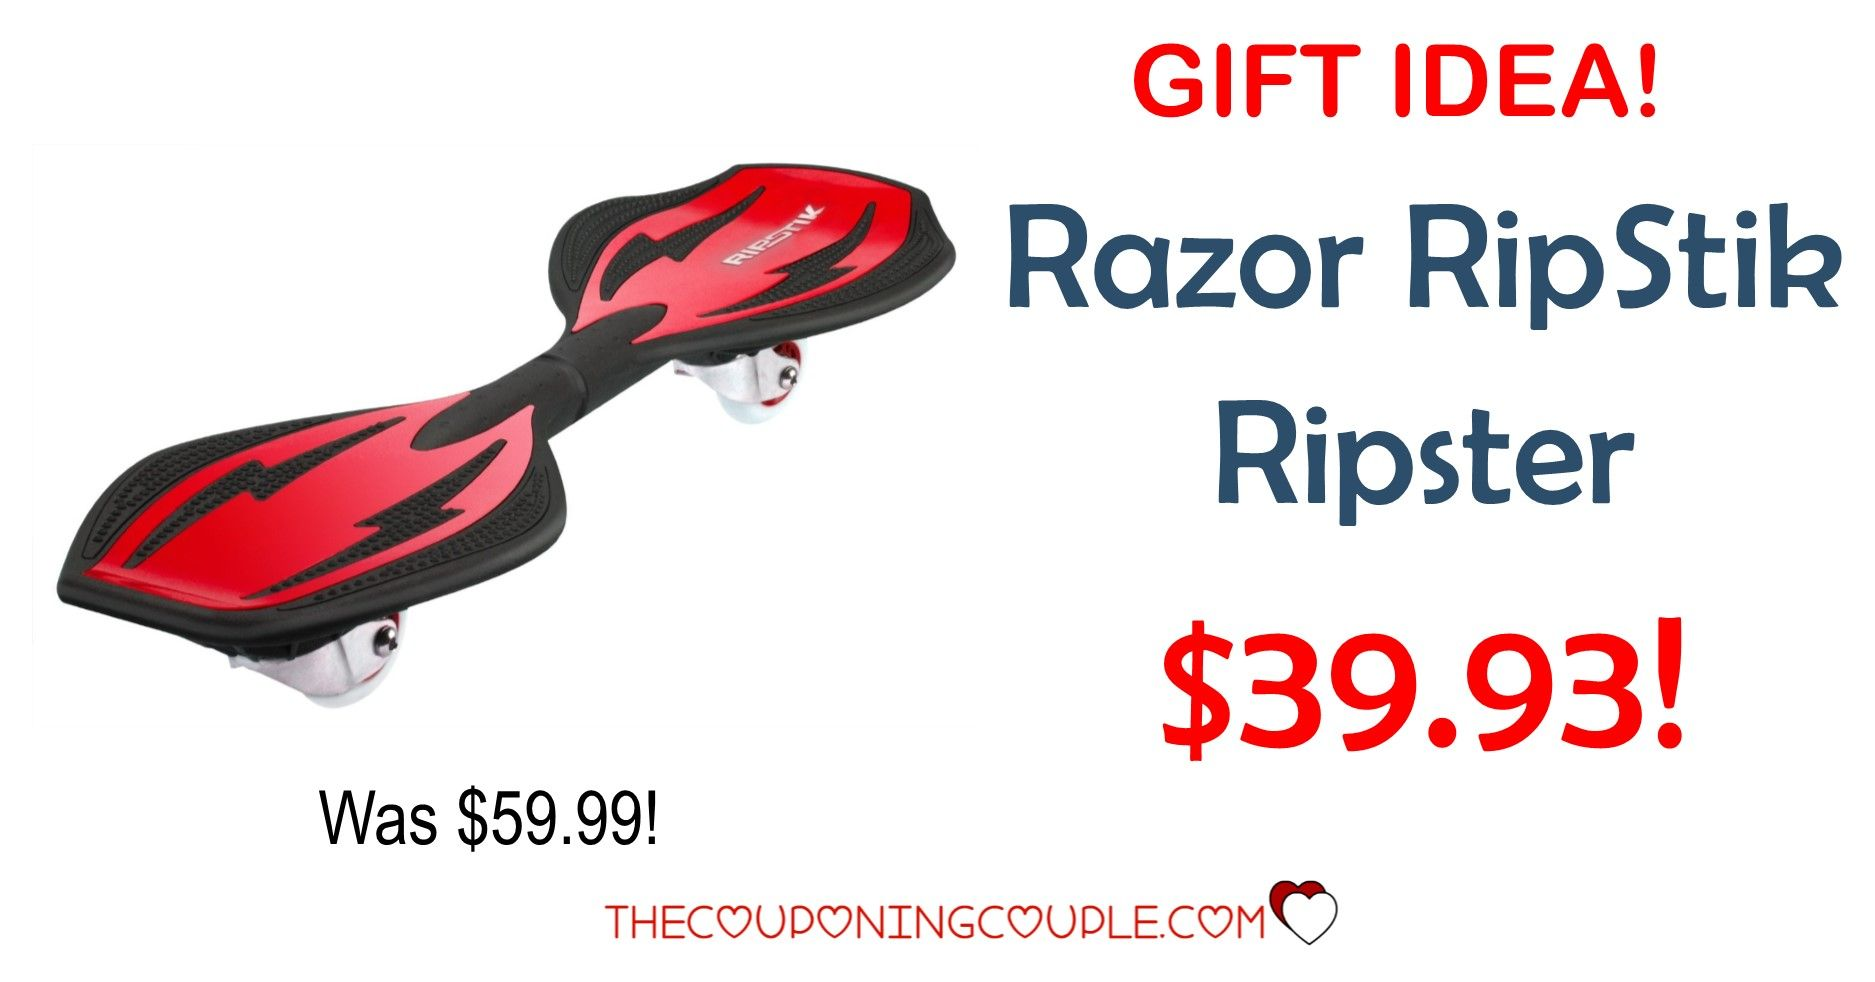 AWESOME GIFT IDEA- especially for older kids! Get the Razor RipStik Ripster for only $39.93 (reg $59.99!) So much fun! Get them outside and active!  Click the link below to get all of the details ► http://www.thecouponingcouple.com/razor-ripstik-ripster/ #Coupons #Couponing #CouponCommunity  Visit us at http://www.thecouponingcouple.com for more great posts!